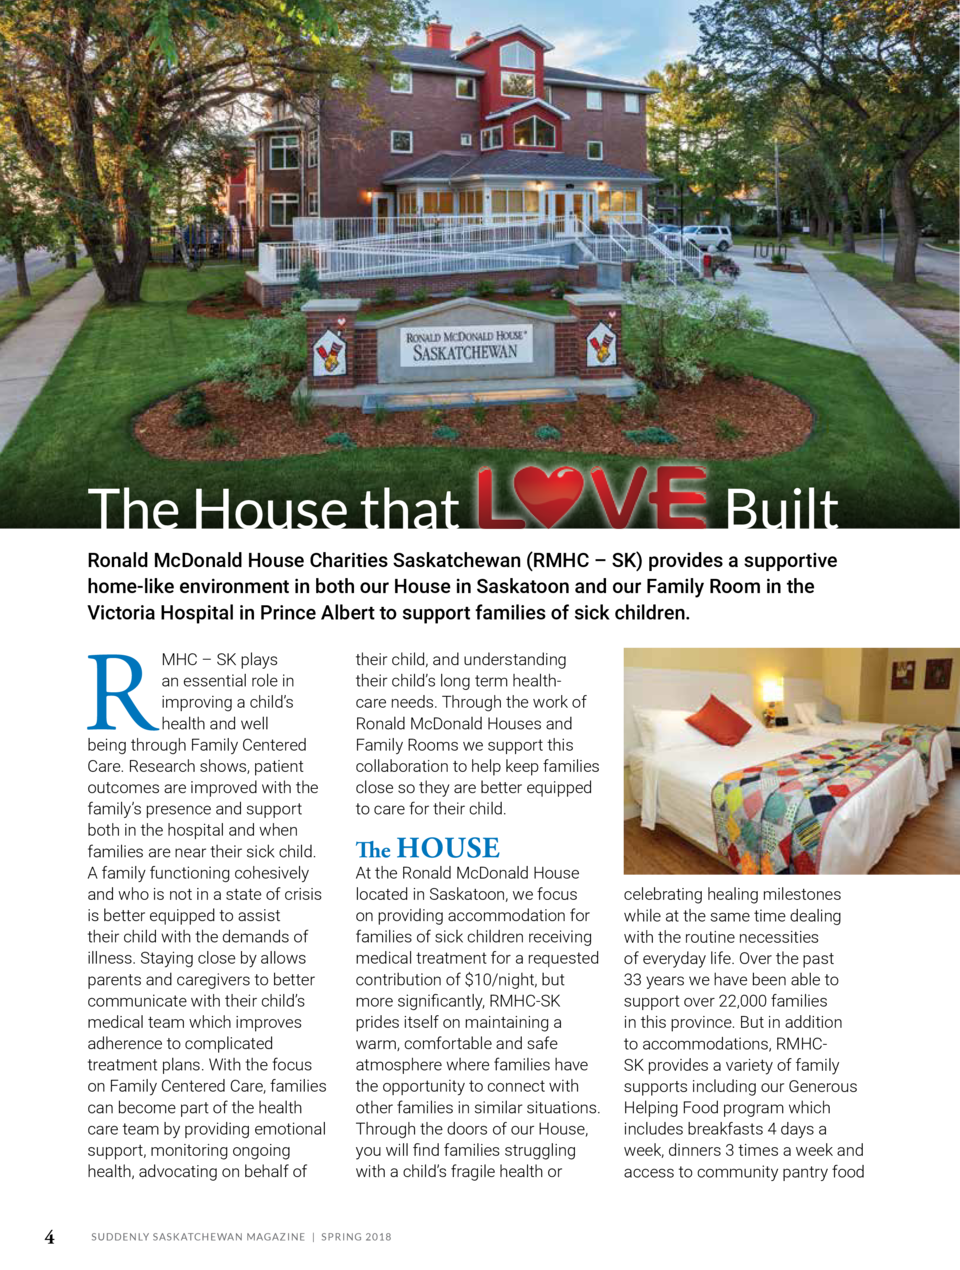 The House that  Built  Ronald McDonald House Charities Saskatchewan  RMHC     SK  provides a supportive home-like environm...